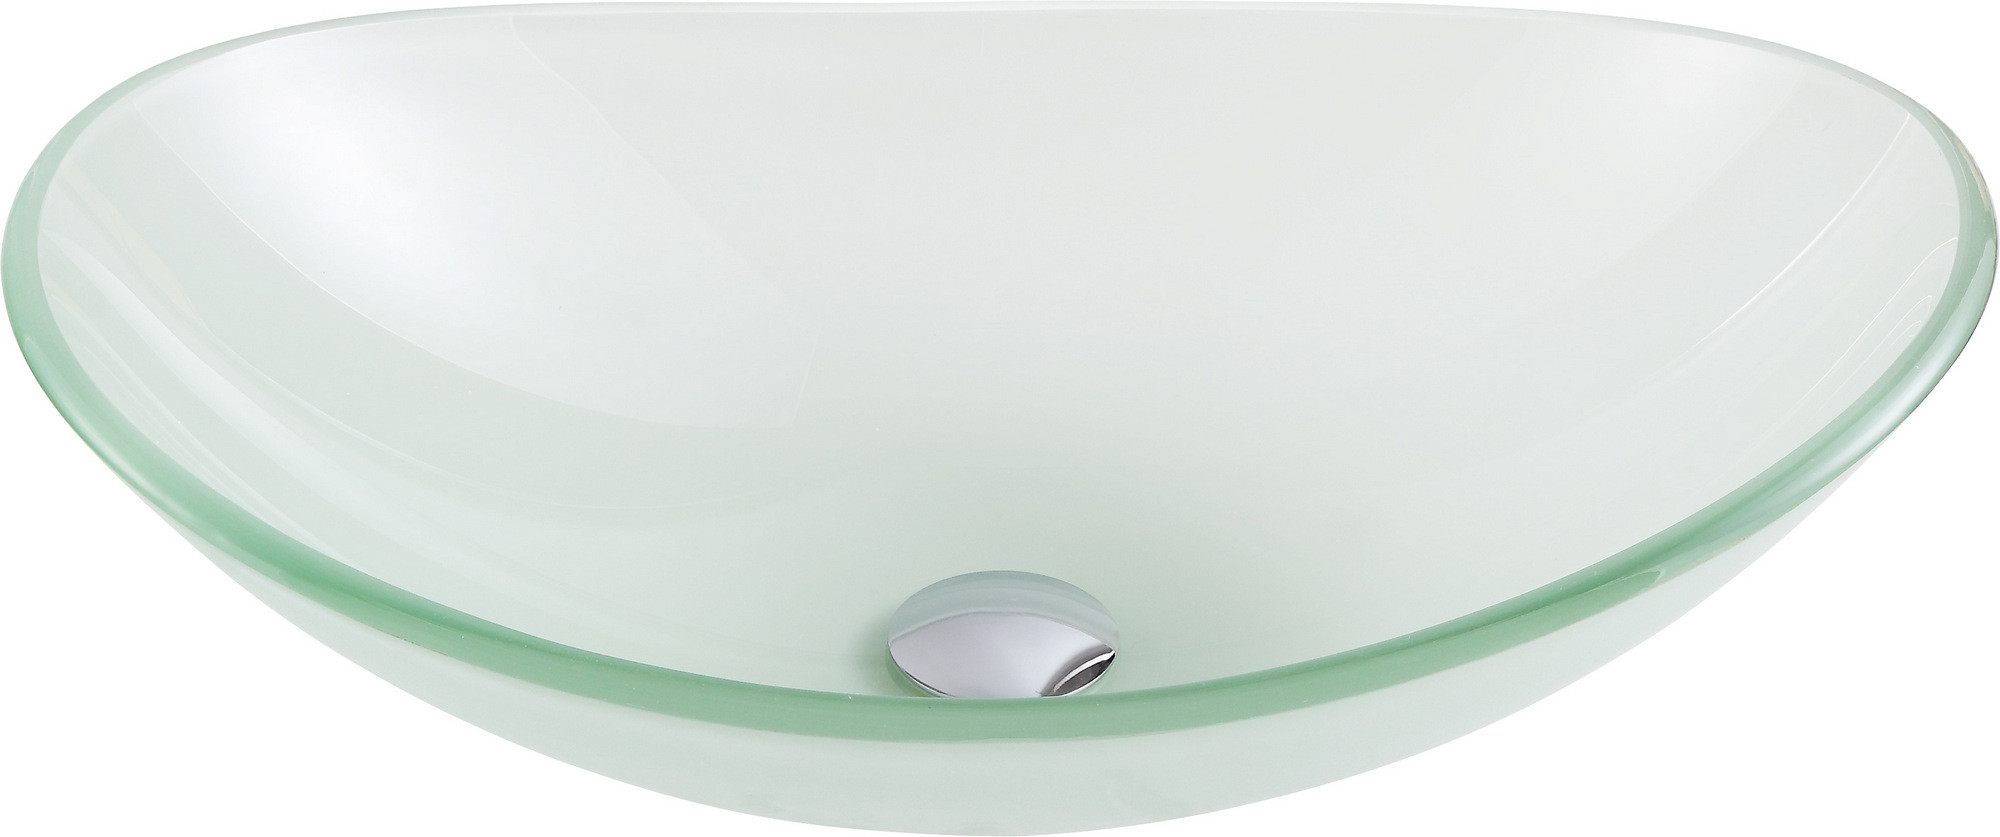 ANZZI LS-AZ086 Forza Series Deco-Glass Vessel Sink In Lustrous Frosted